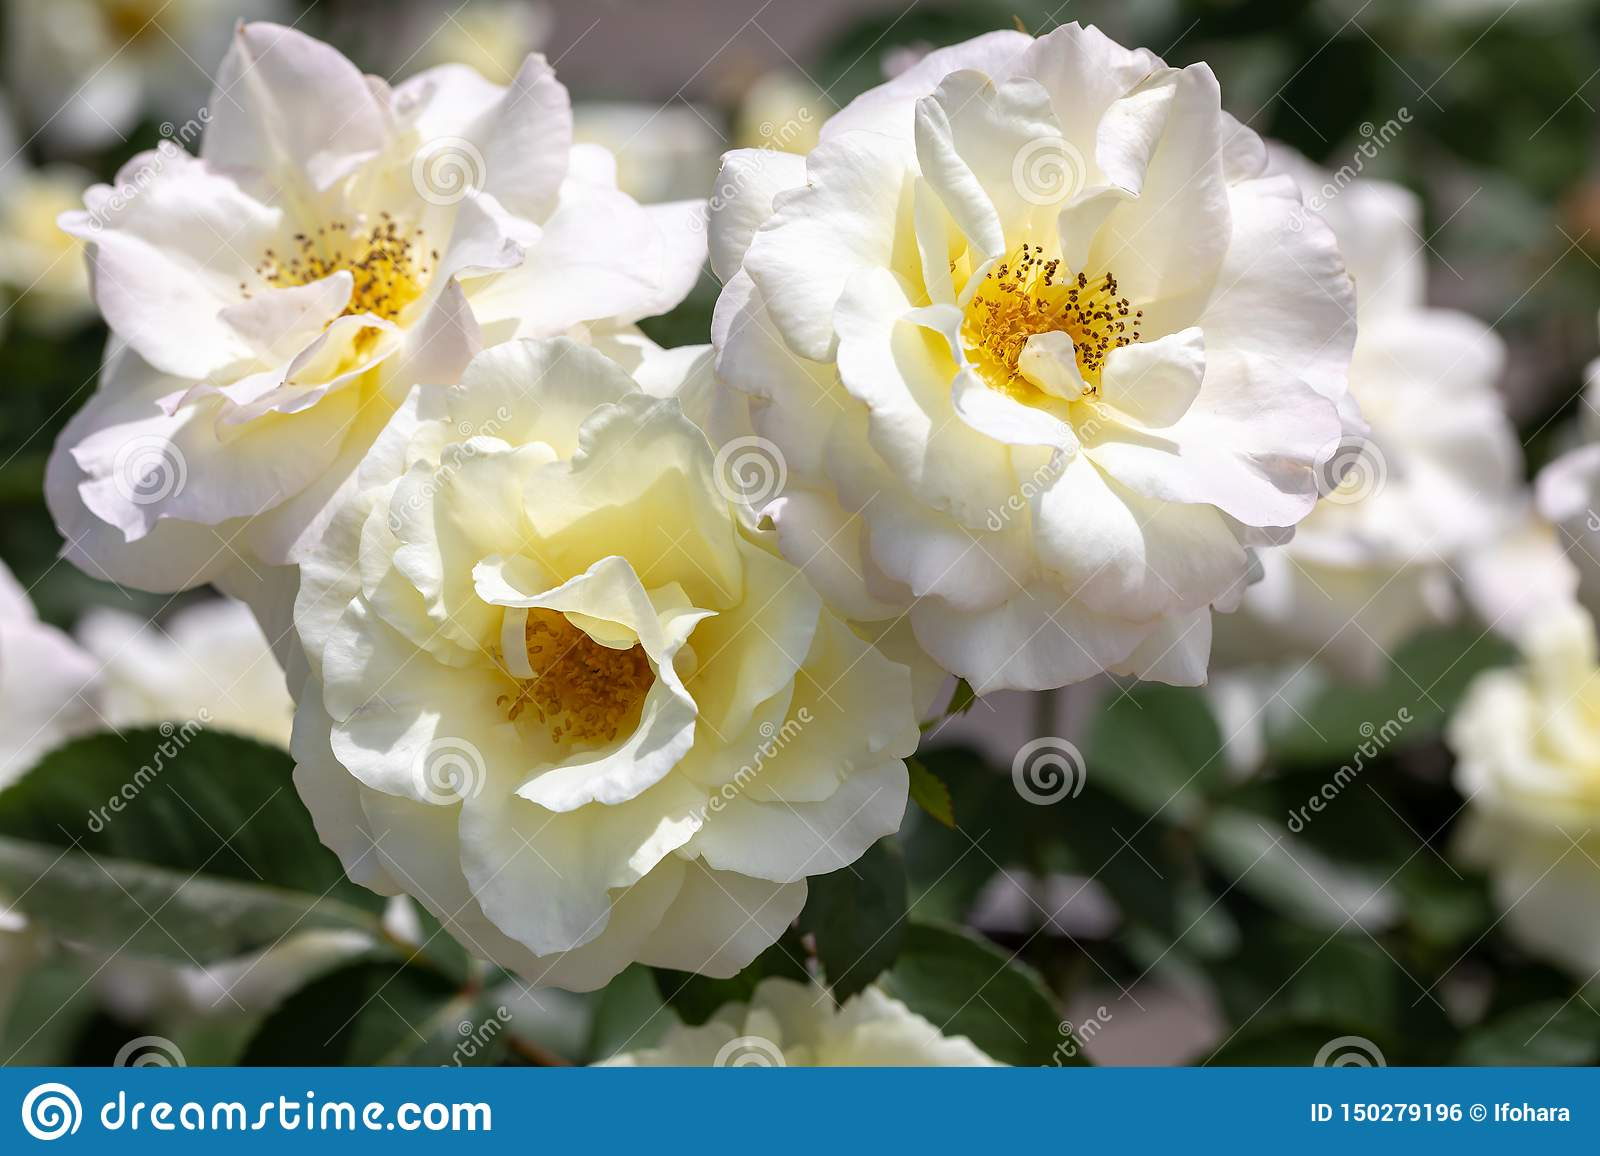 Close-up of three white `Macy`s Pride` hybrid shrub roses blooming in garden